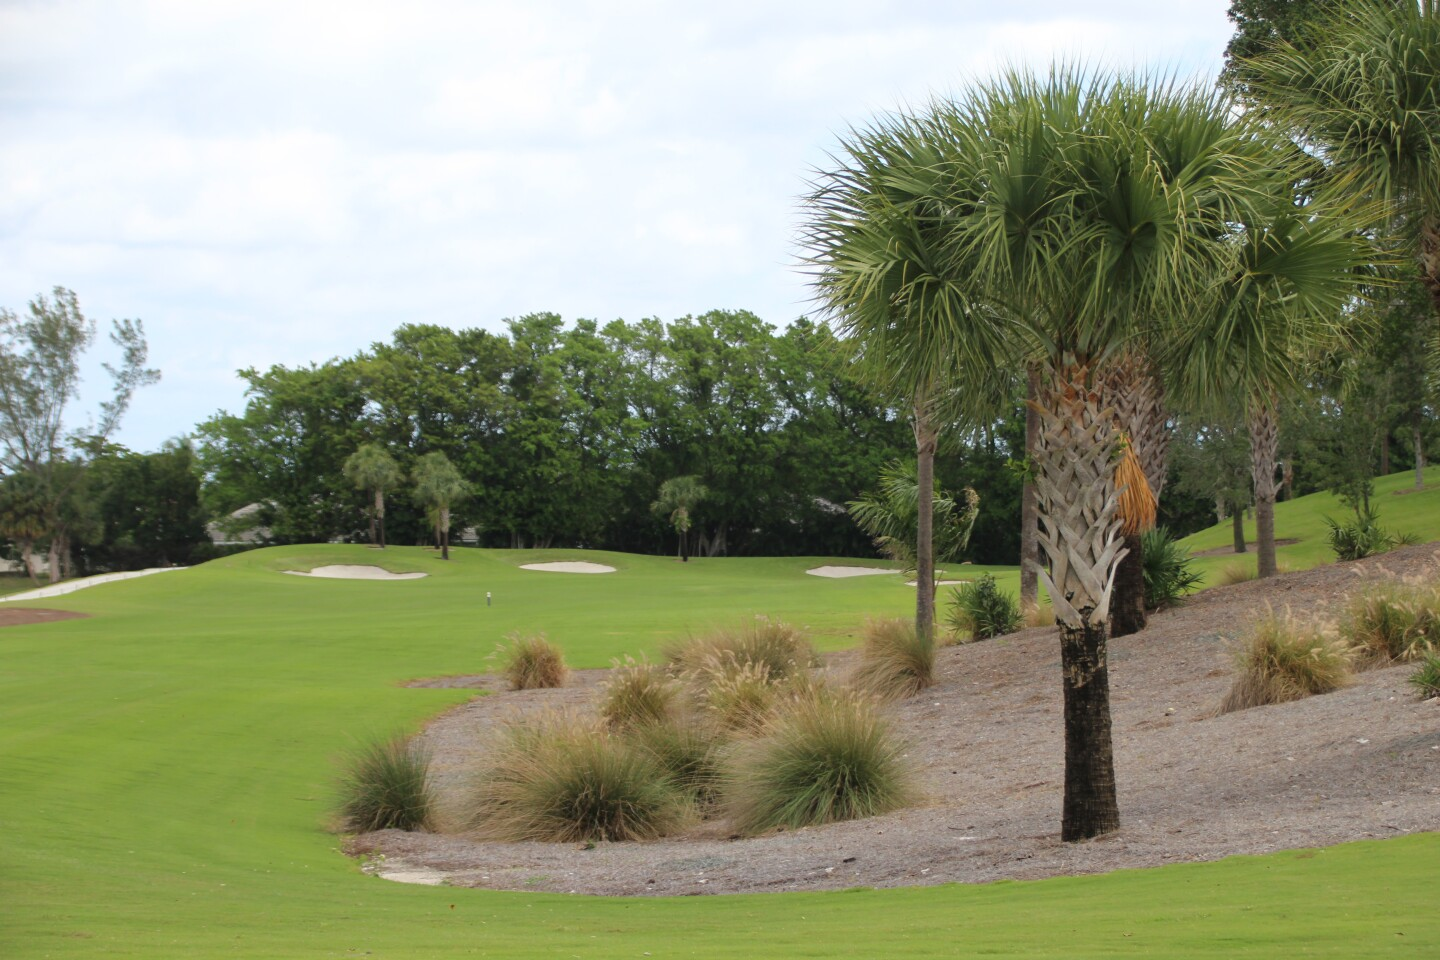 Banyan Cay Course Photos - 2021 - AJGA Junior Championship presented by the Spinnaker Foundation (5).JPG